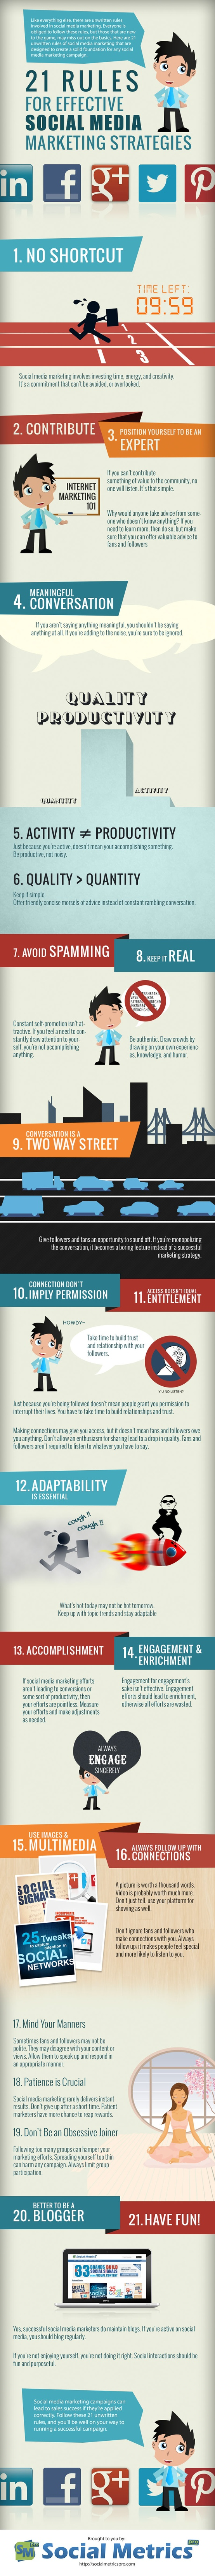 social-media-marketing-strategies-infographic